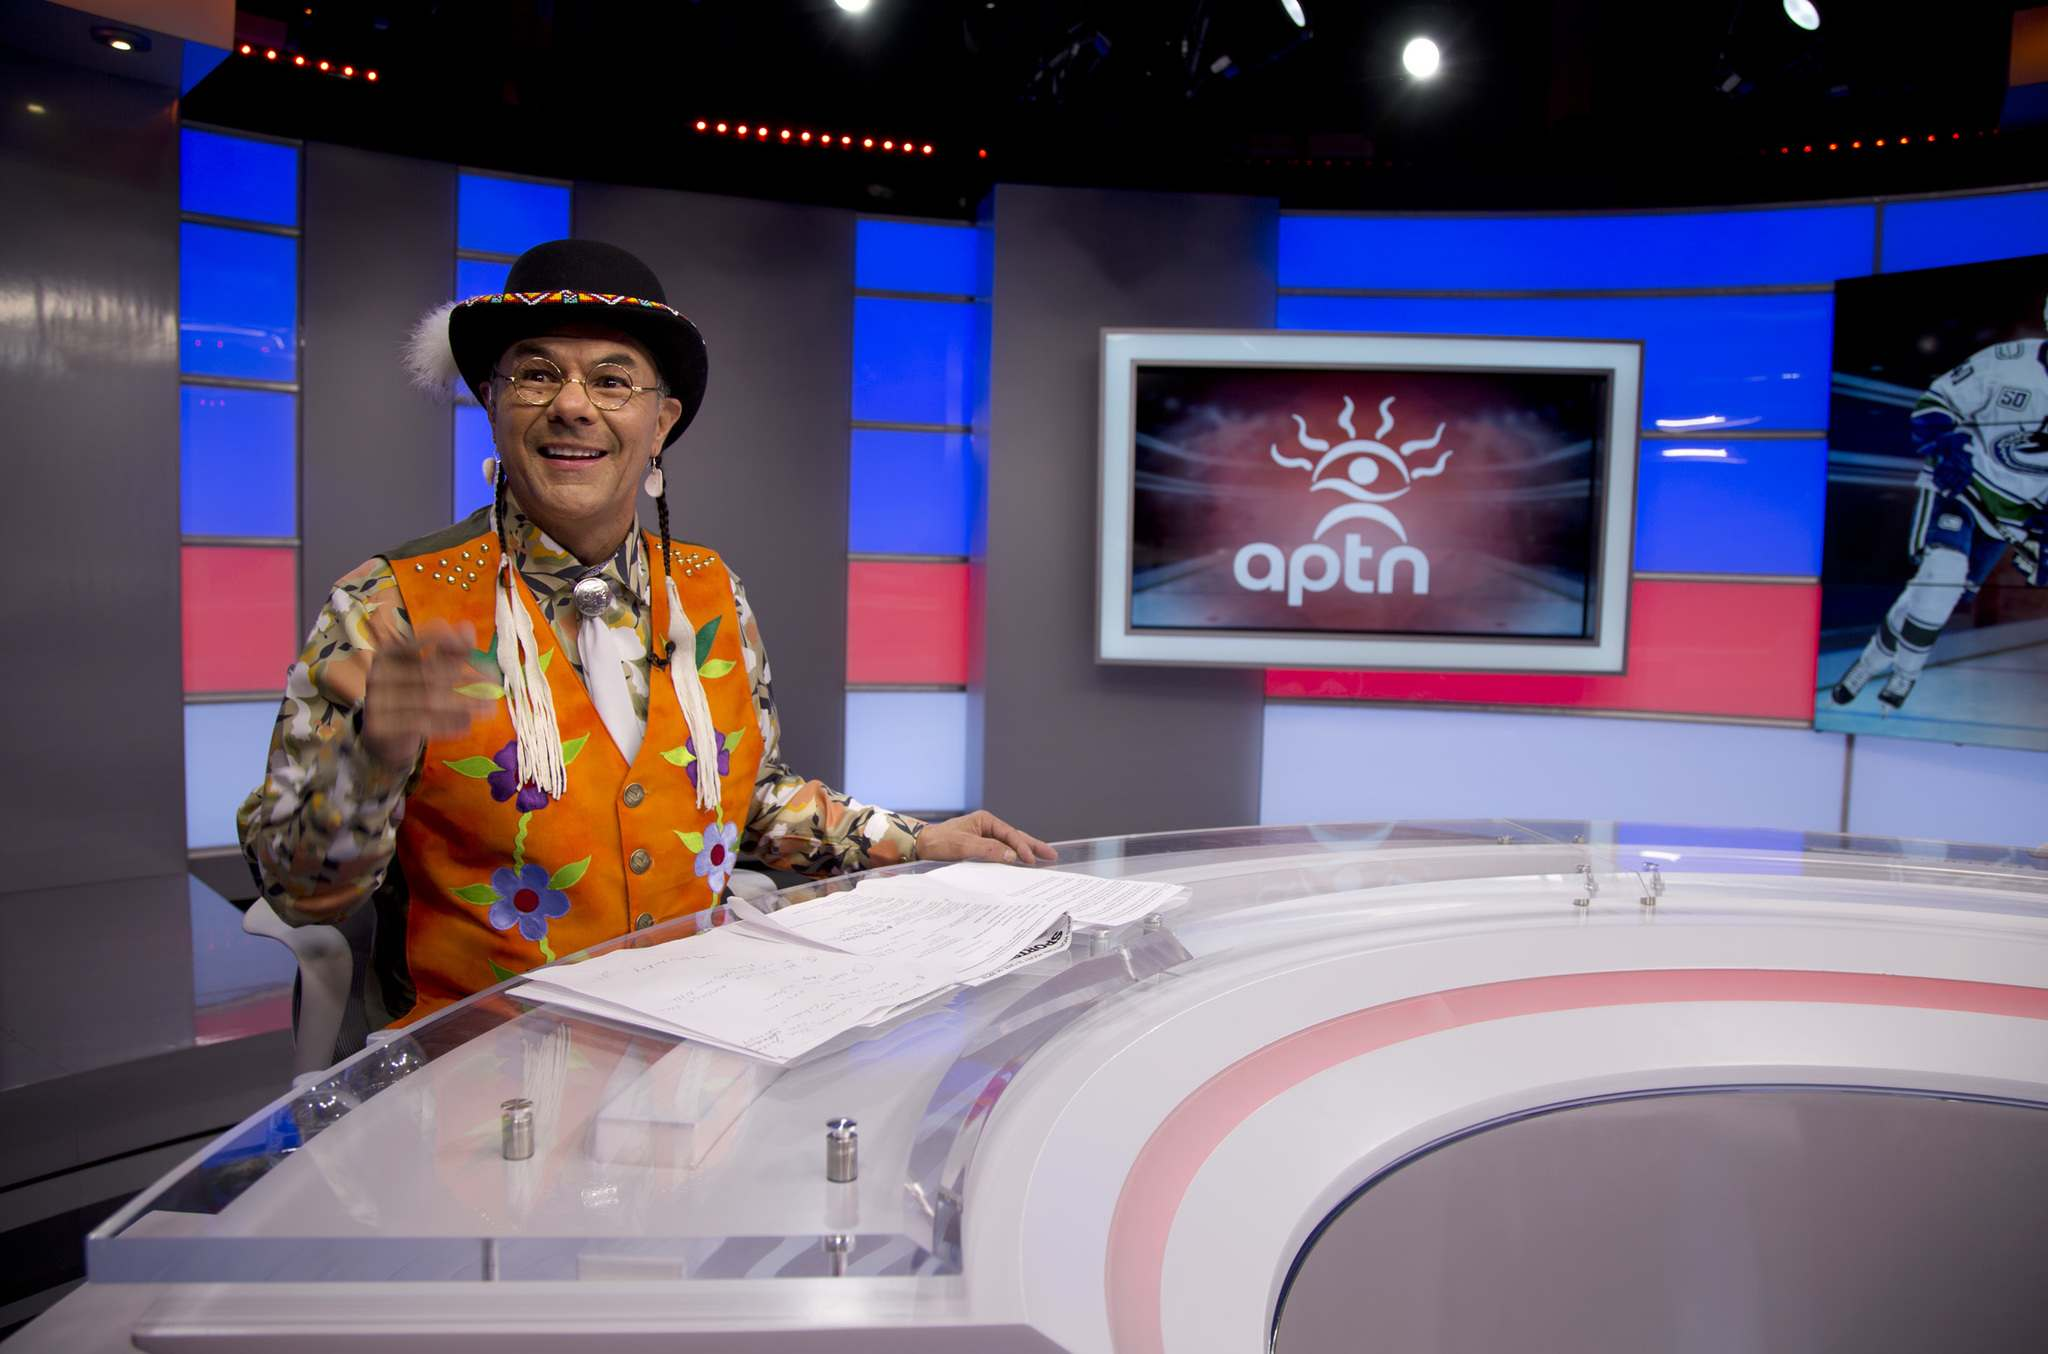 MELISSA MARTIN / WINNIPEG FREE PRESS</p><p>Minutes before showtime, Earl Wood gets ready to introduce the Hometown Hockey in Cree program.</p></p>